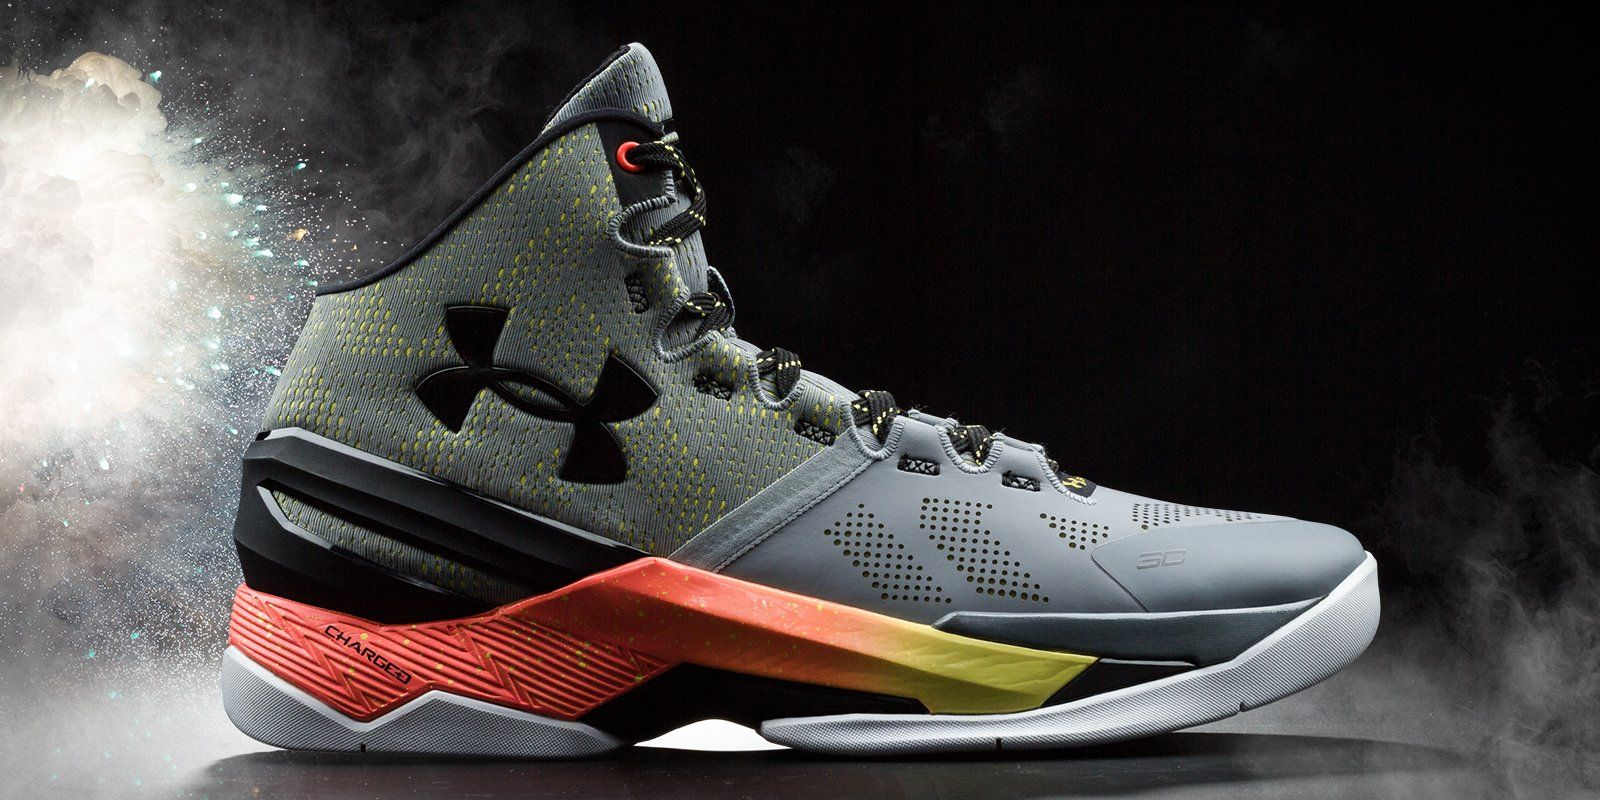 The KOBE 9 Elite in Two New Exclusive Colorways Nike News